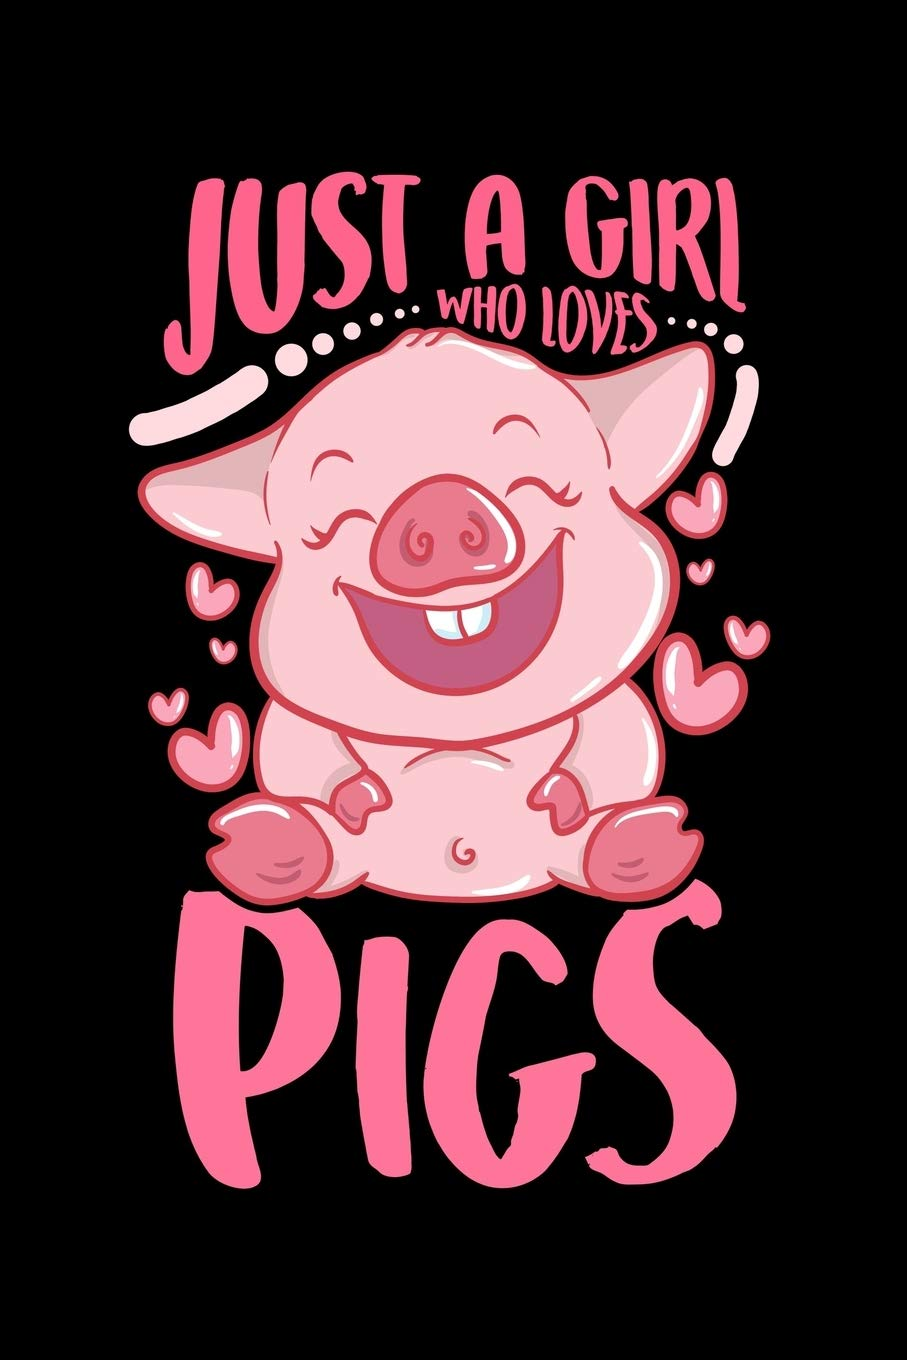 Just A Girl Who Loves Pigs Adorable Just A Girl Who Loves Pigs Cute Baby Pig Piglet Blank Composition Notebook For Journaling Writing 120 Lined Pages 6 X 9 Journals The